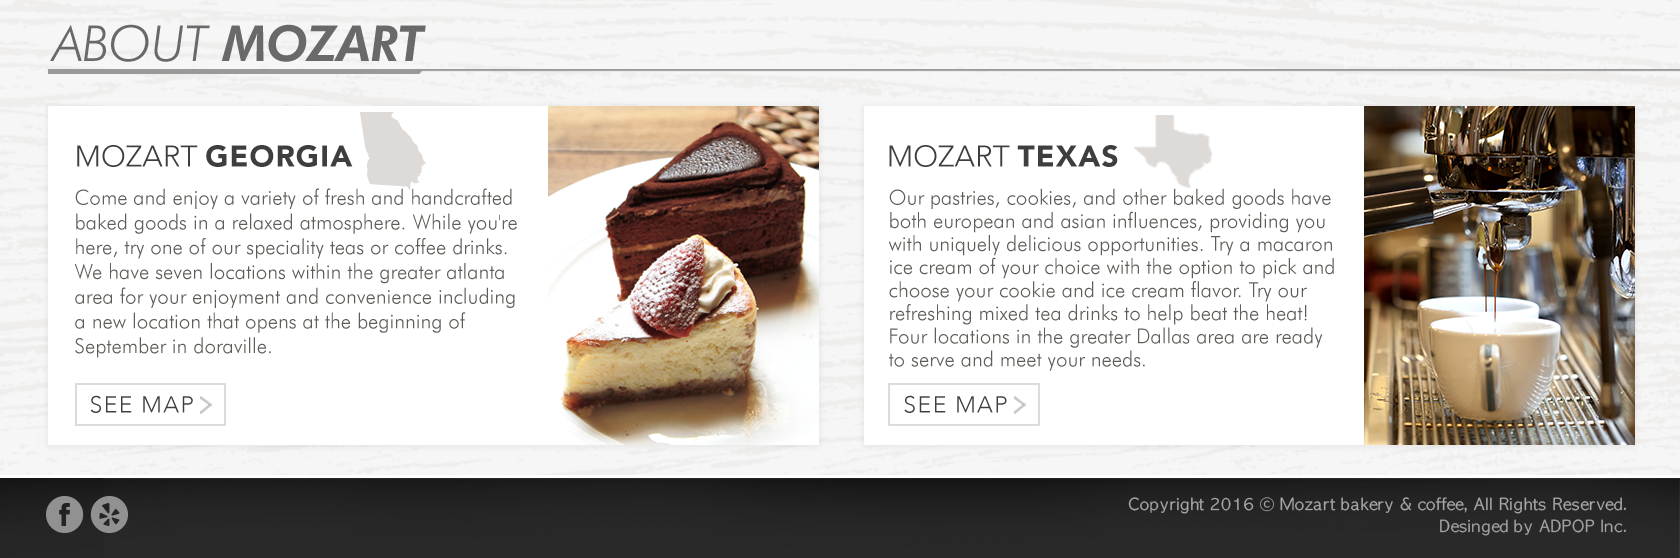 About Mozart -       Mozart Georgia - Come and enjoy a variety of fresh and handcrafted baked goods in a relaxed atmosphere. While you're here, try one of our speciality teas or coffee drinks.       We have seven locations within the greater atlanta area for your enjoyment and covenience including a new location that opens at the beginning of September in doraville.        Mozrt Texas - Our pastries, cookies and other baked goods have both european and asian influences, providing you with uniquely delicious opportunities.       Try our refreshing mixed tea drinks to help beat the heat! Four locations in the greater Dallas area are ready to serve and meet your needs.        Copyright 2016 Mozart Bakery and Coffee, All Rights Reserved. Designed by AdPop Inc.